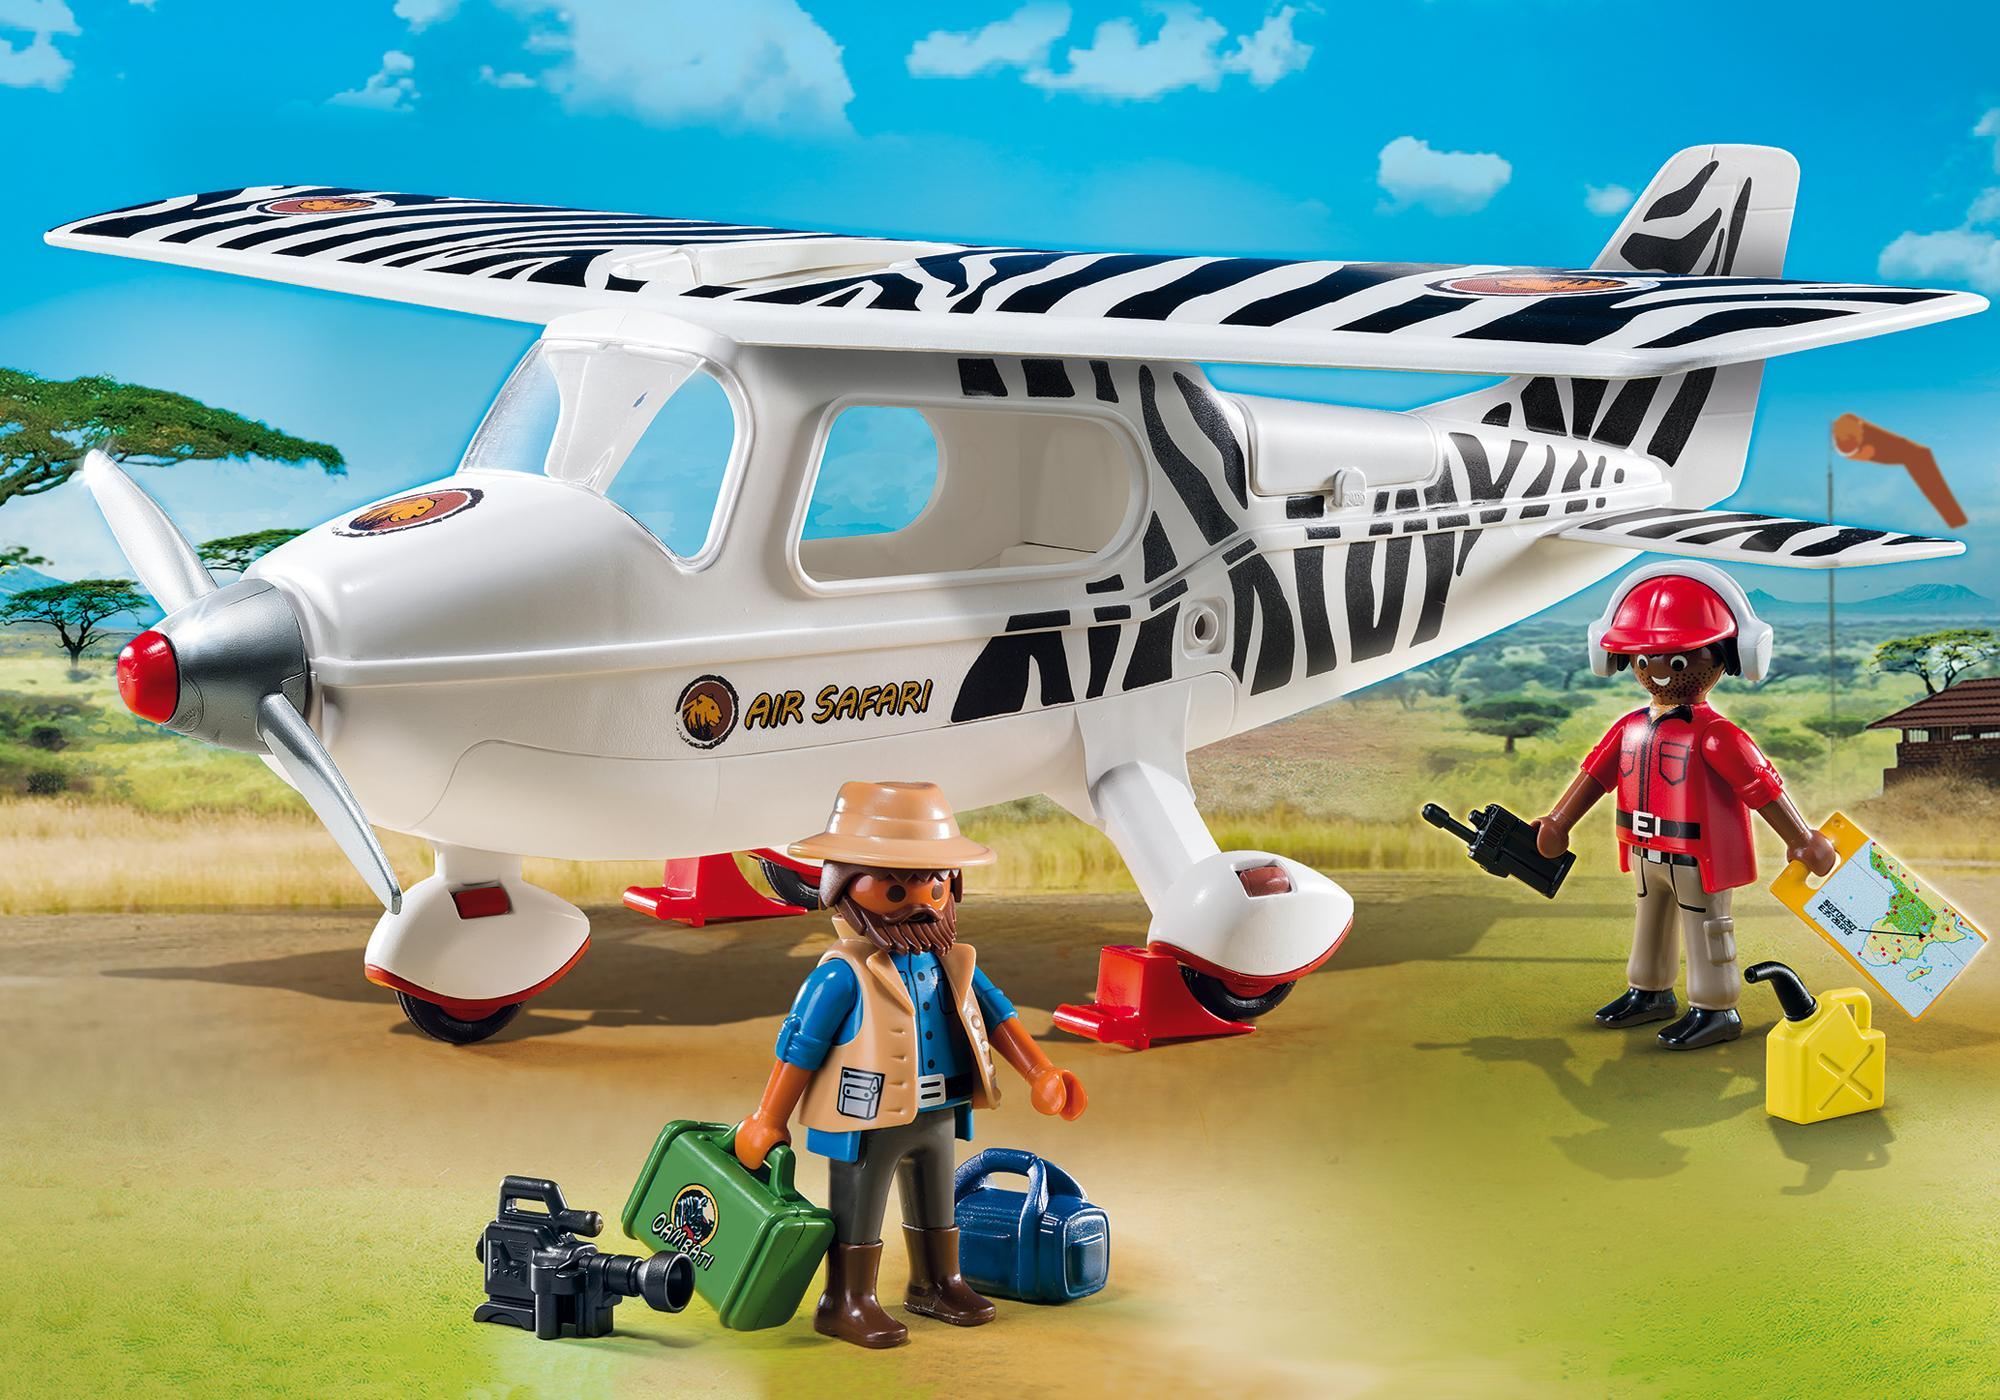 http://media.playmobil.com/i/playmobil/6938_product_detail/Safari Plane